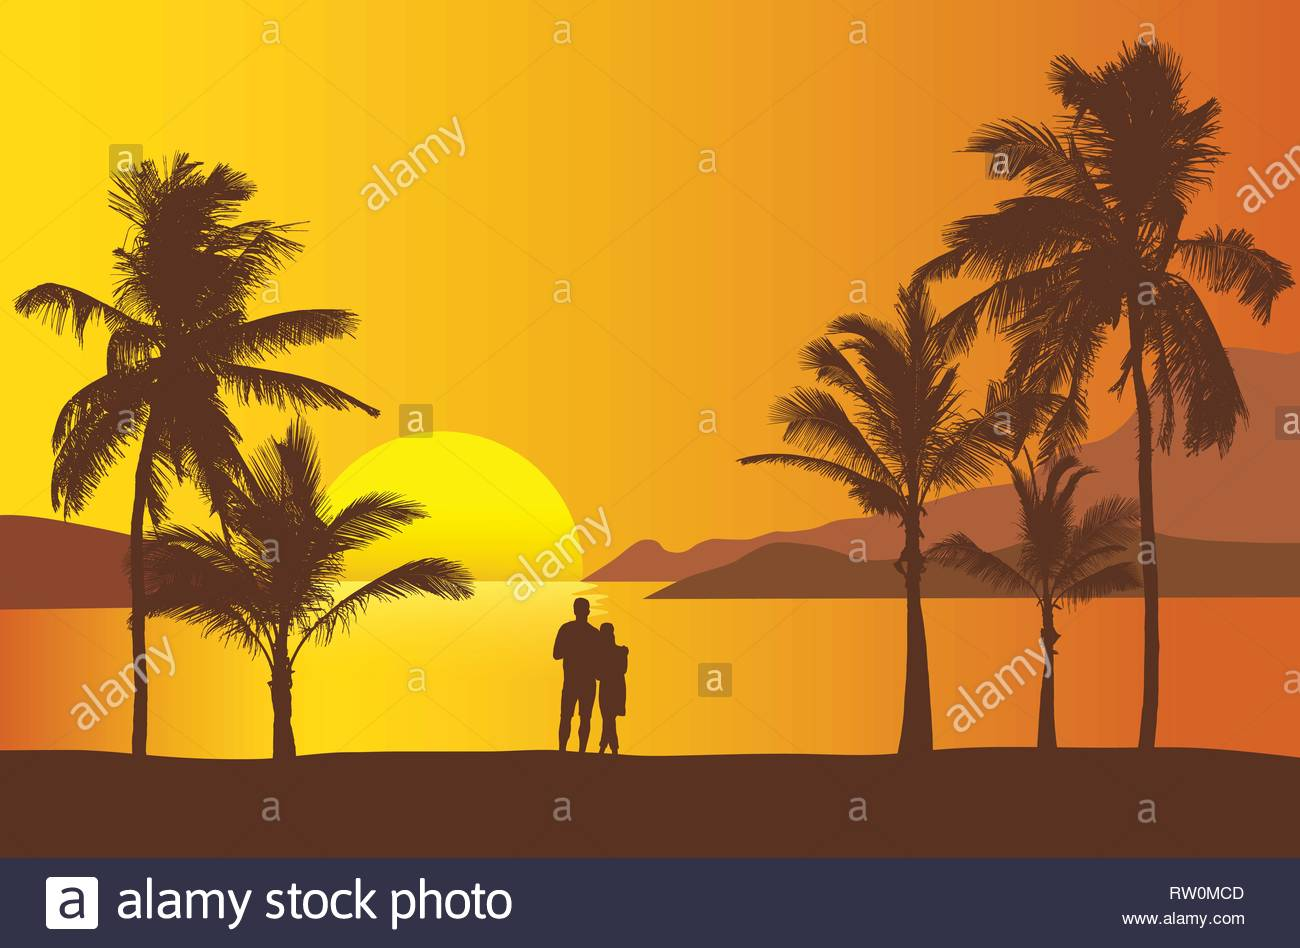 Realistic illustration of sunset over sea or ocean with beach and palm trees. Two people standing together on the beach looking at the water. Orange s - Stock Vector